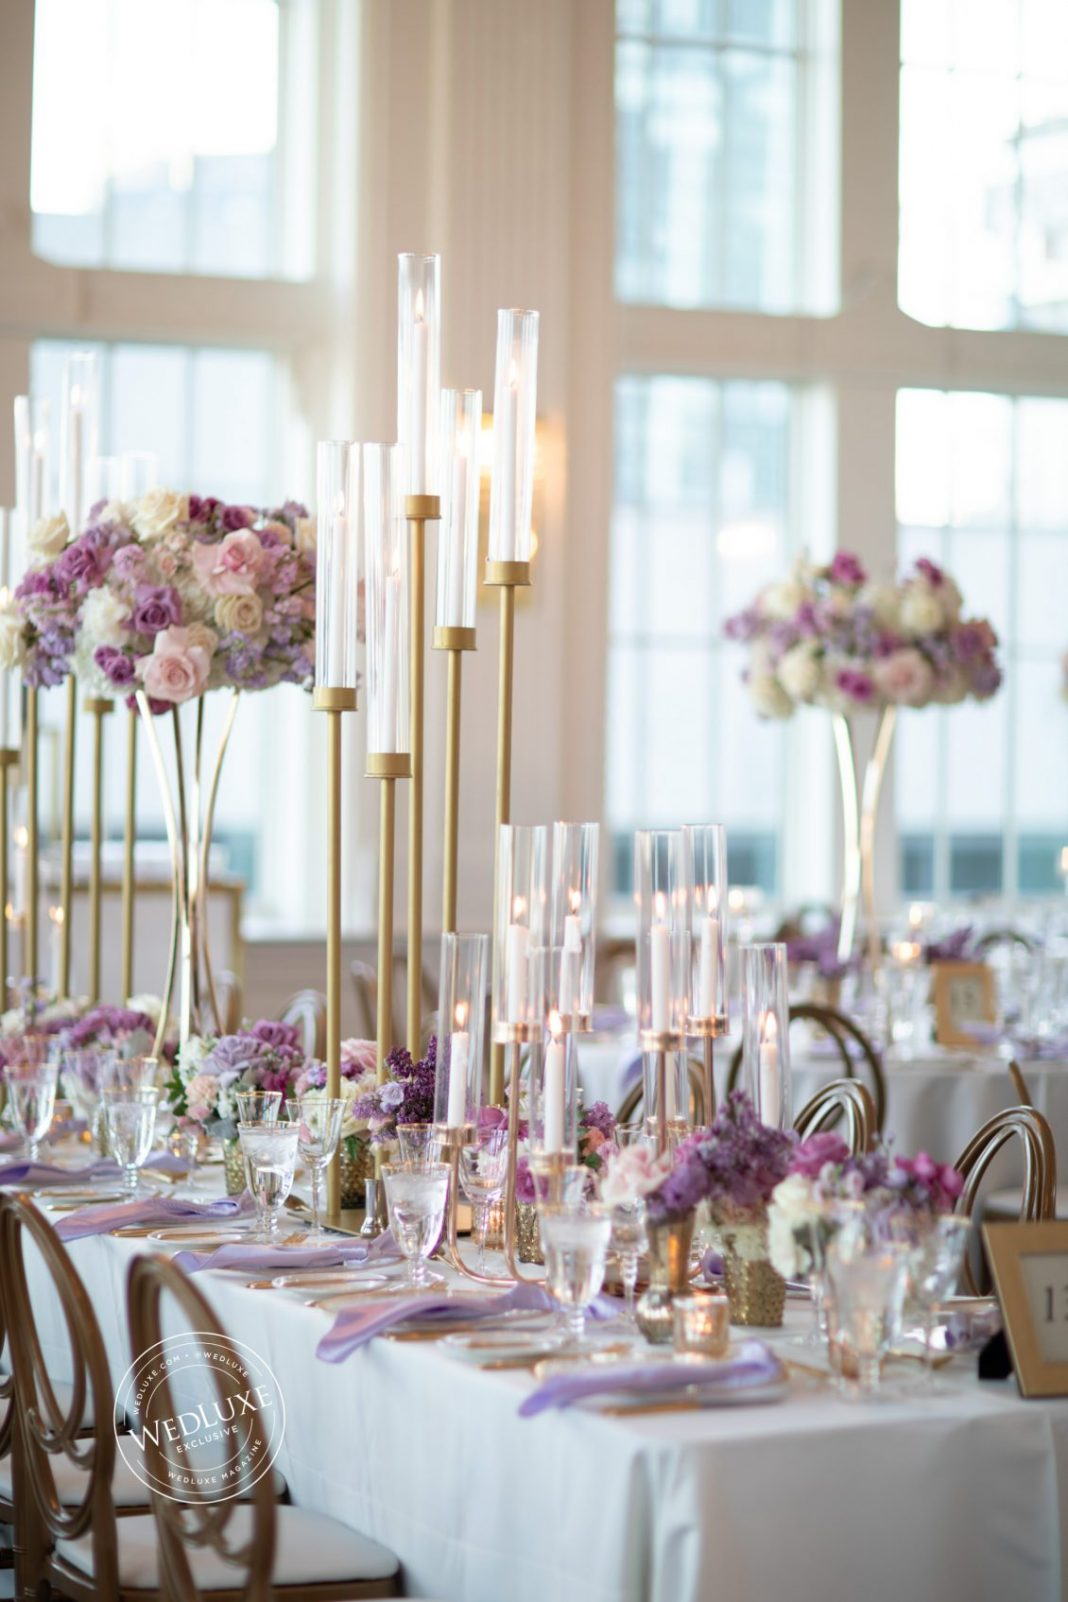 An Ode to Spring - WedLuxe Magazine